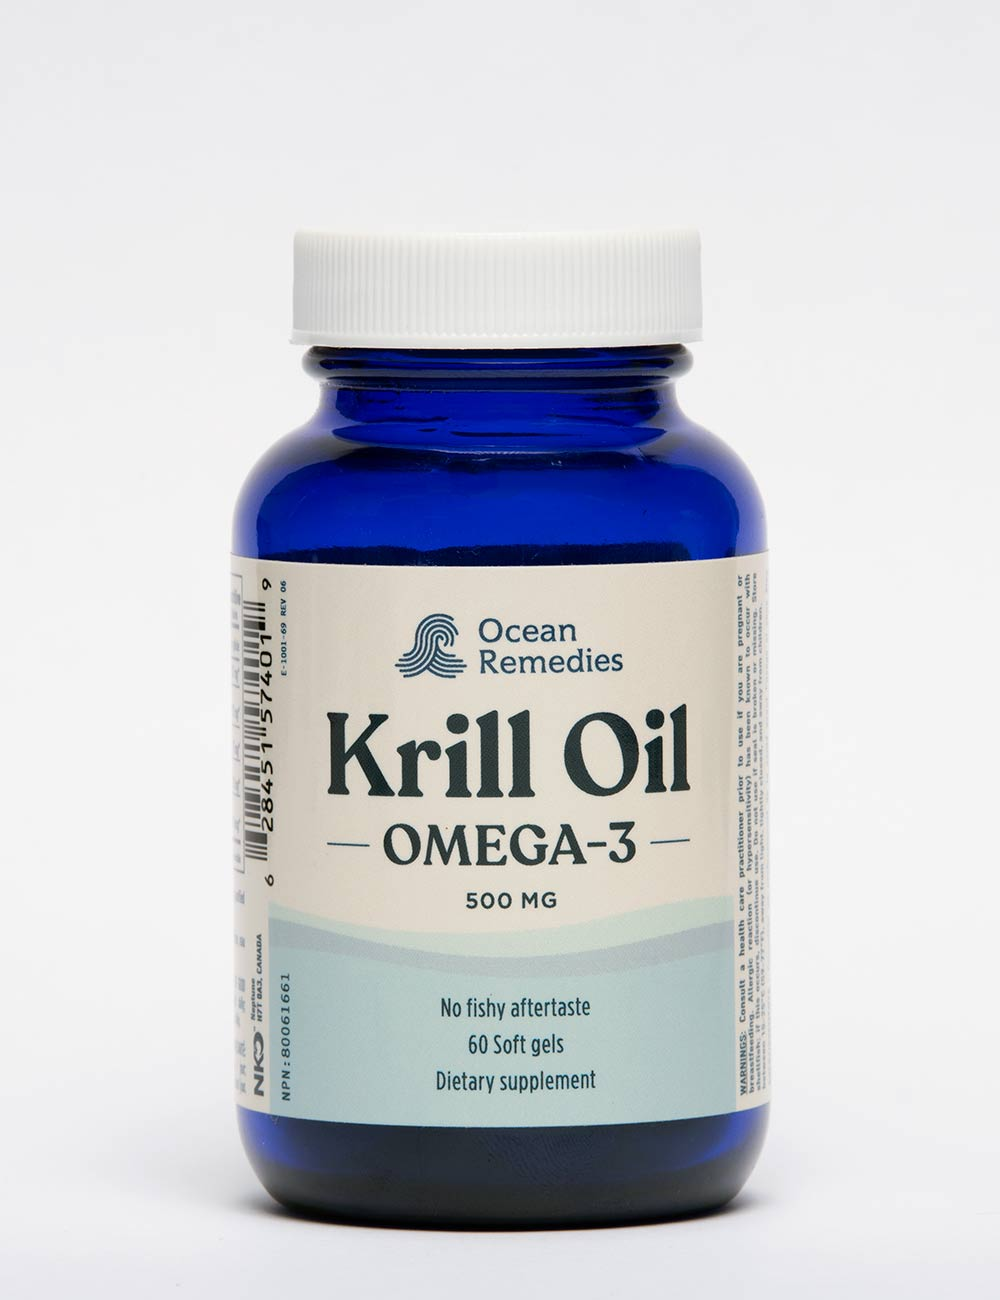 Ocean Remedies Krill Oil